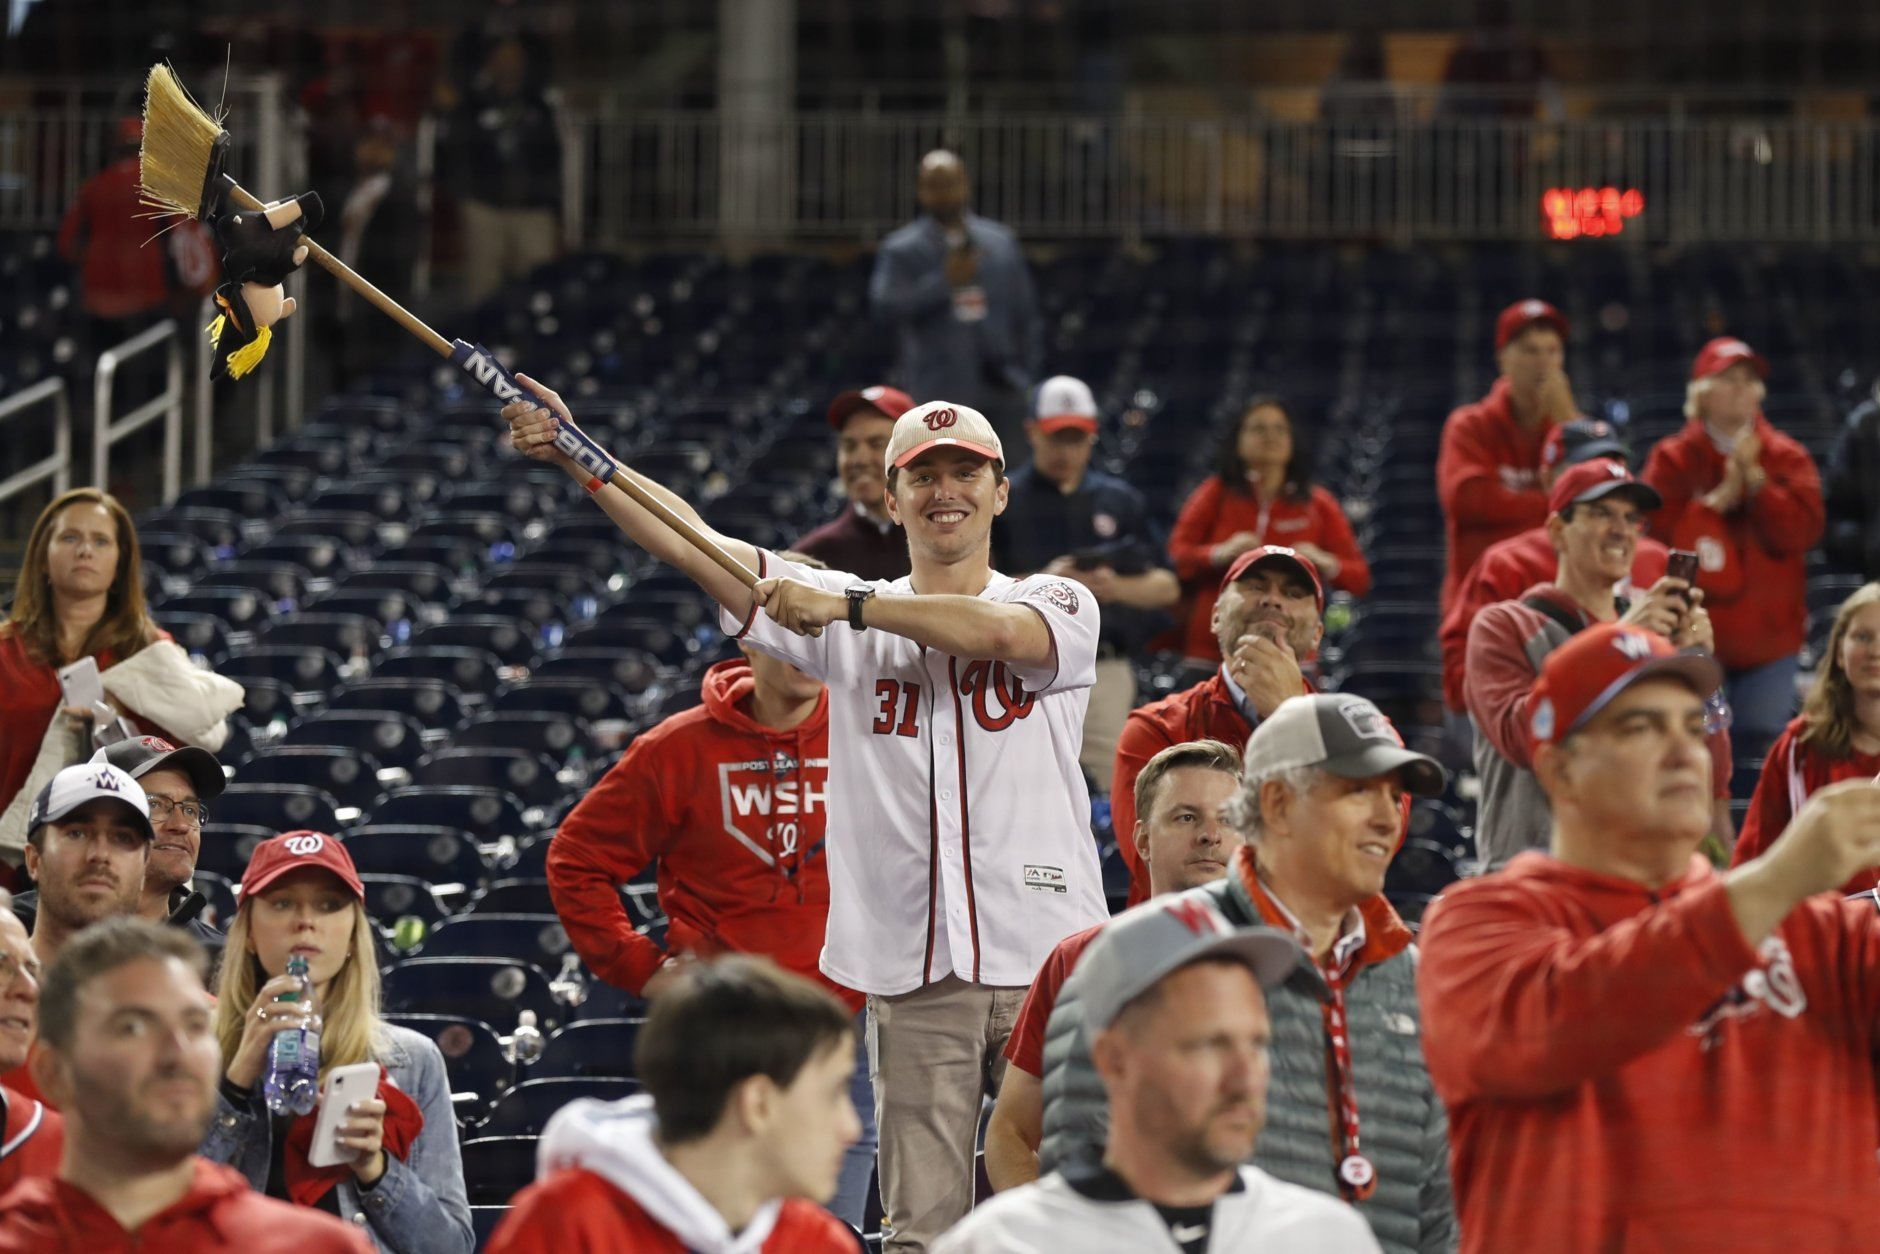 Washington Nationals fans celebrate after Game 4 of the baseball National League Championship Series against the St. Louis Cardinals Tuesday, Oct. 15, 2019, in Washington. The Nationals won 7-4 to win the series 4-0. (AP Photo/Jeff Roberson)